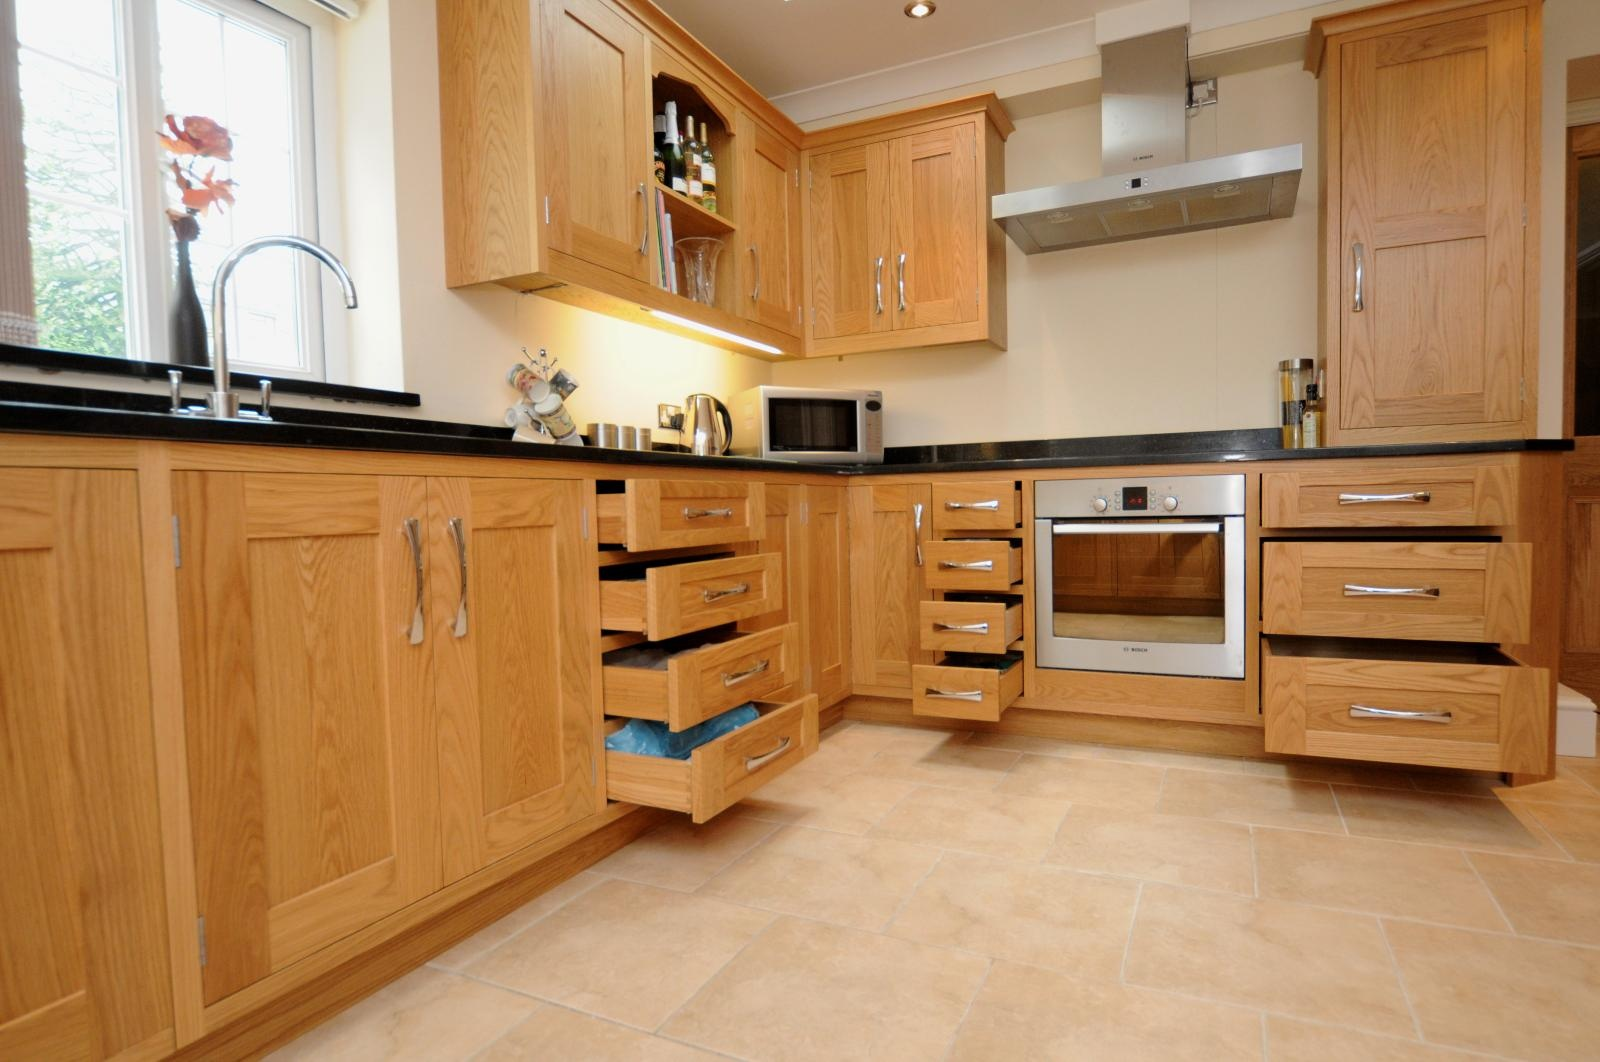 Oak Cabinet Kitchen Oak Shaker Kitchen St Davids Mark Stone 39 S Welsh Kitchens Bespoke